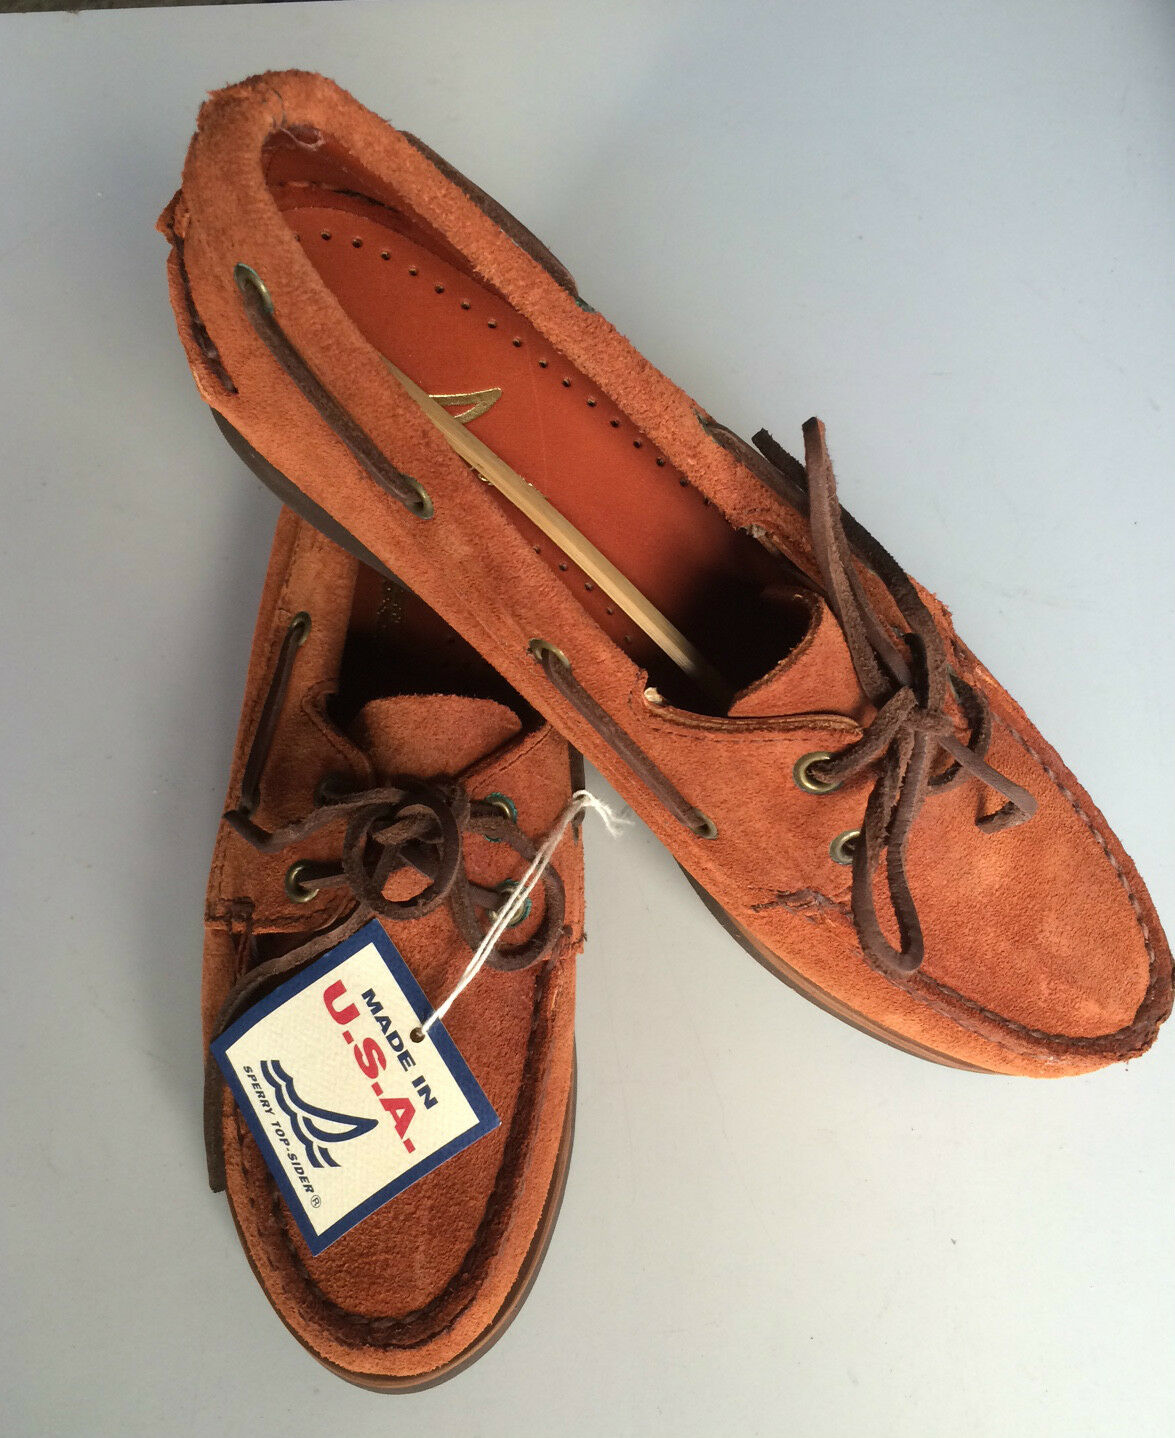 SPERRY TOP SIDER SCARPA DA VELA 38 WOMEN MOCASSINO LEA NUMERO 38 VELA TOP SIDER VELA 54b380